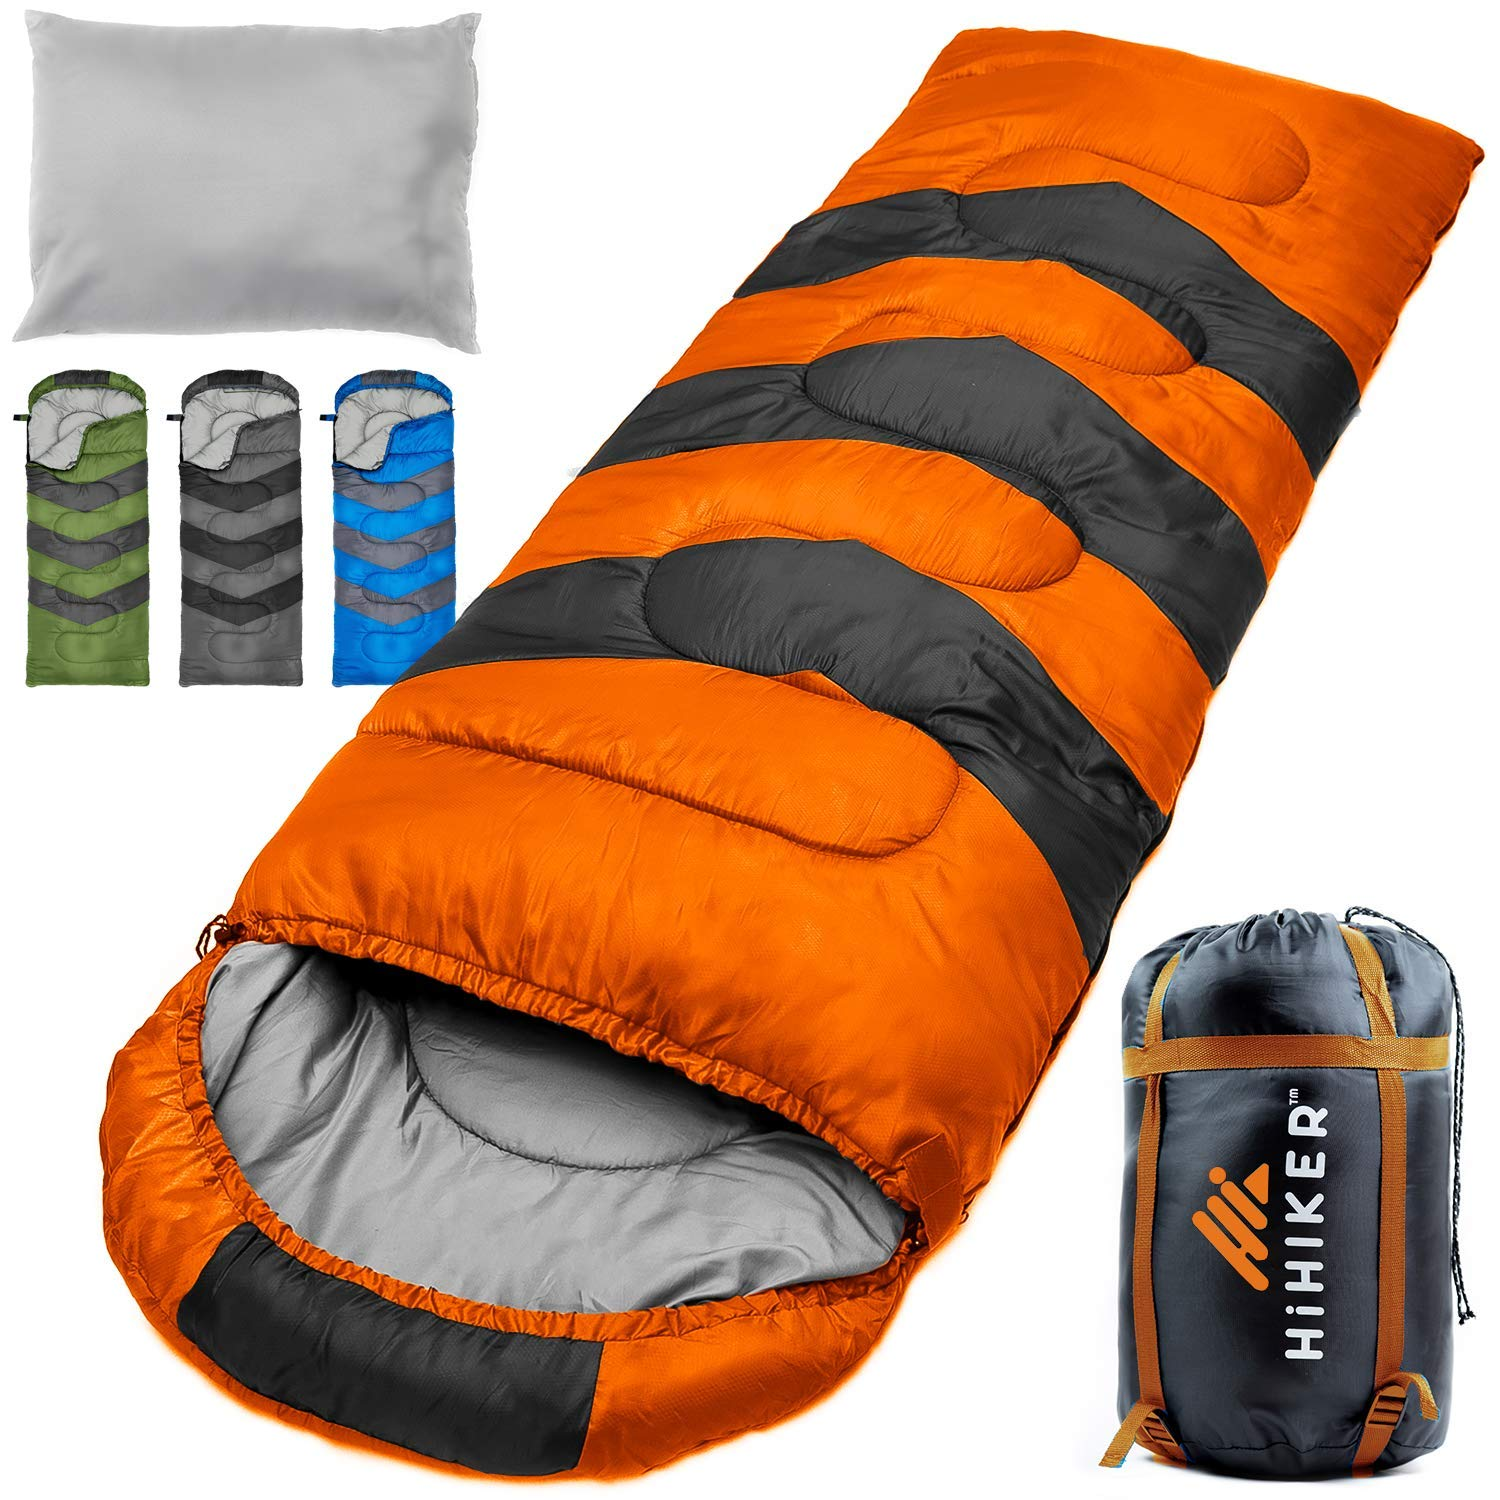 HiHiker Camping Sleeping Bag + Travel Pillow w/Compact Compression Sack - 4 Season Sleeping Bag for Adults & Kids - Lightweight Warm and Washable, for Hiking Traveling. (Orange) by HiHiker